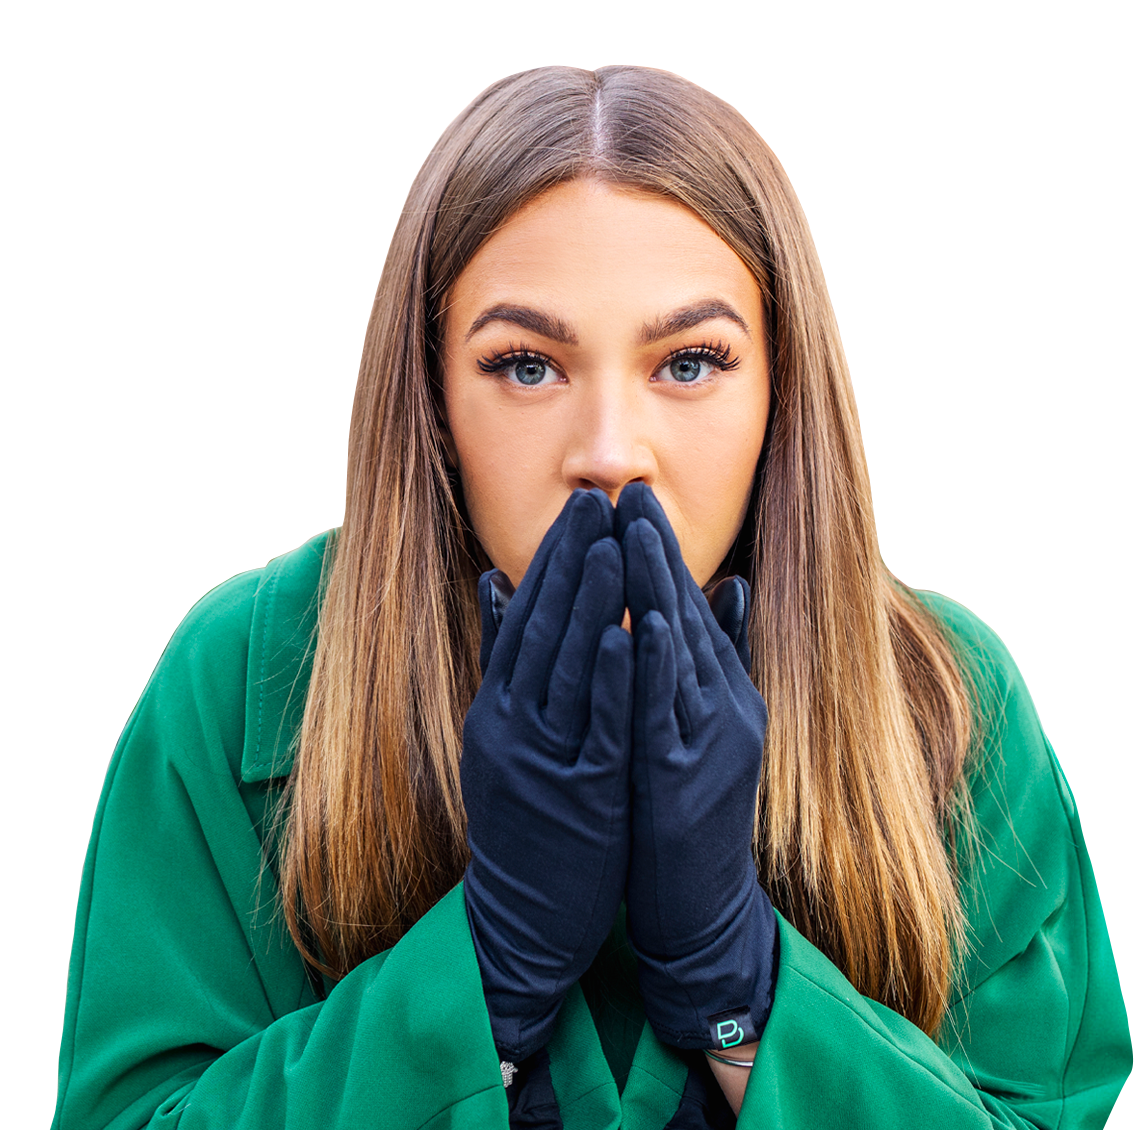 Bumpaa antiviral gloves protecting against viruses and dry skin caused by sanitising